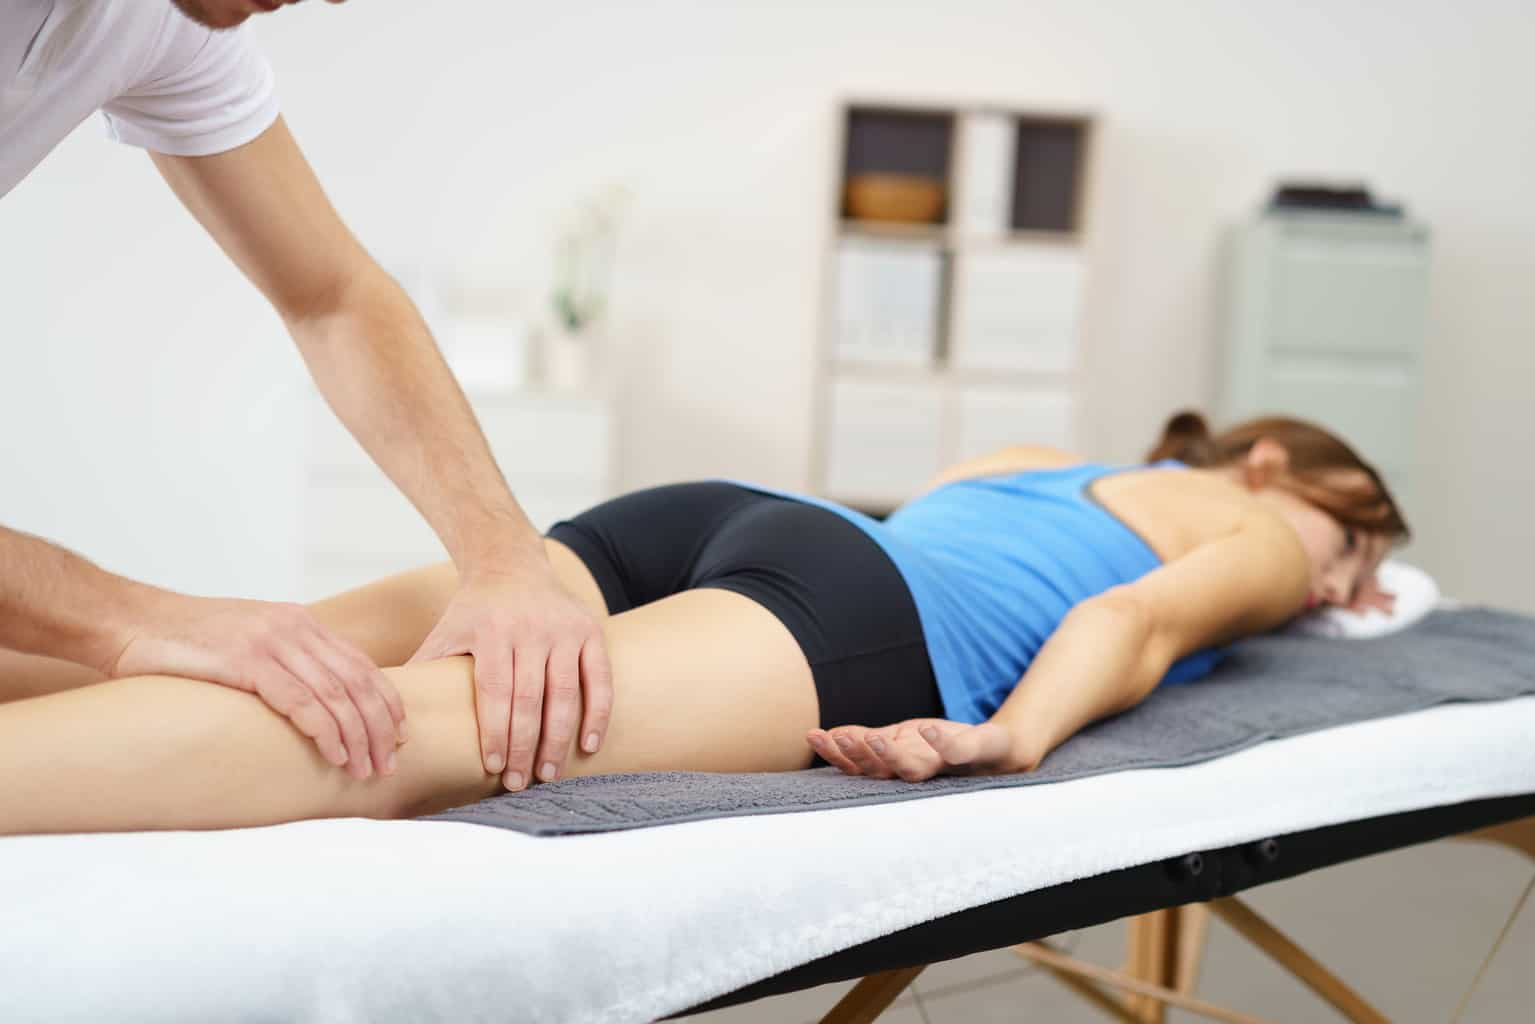 three secrets to treating a pulled hamstring include hands on care, rest, and light exercise